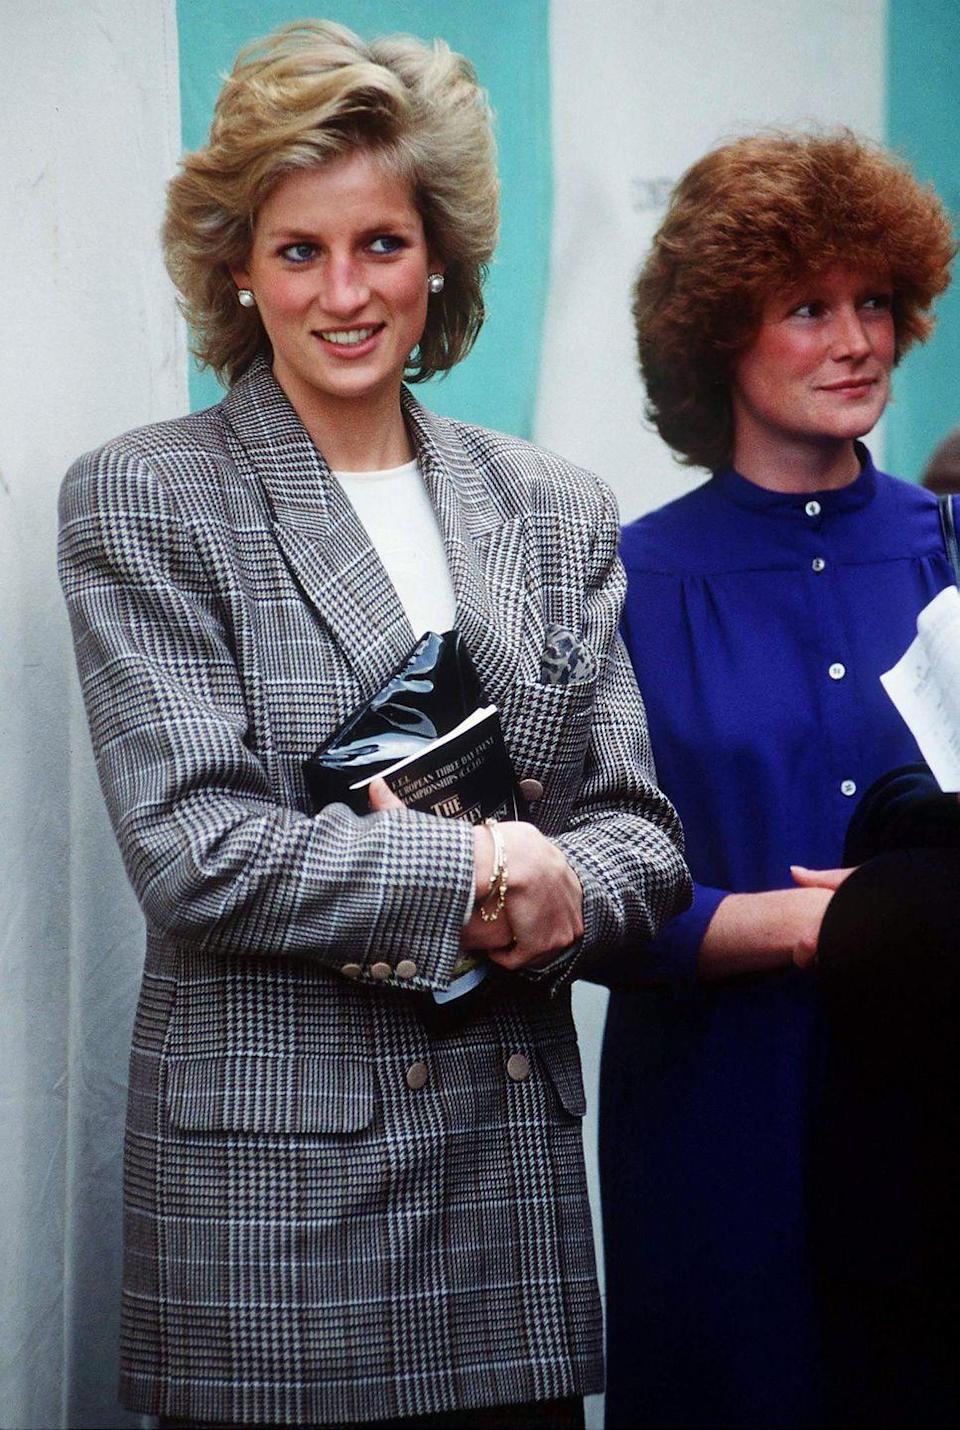 """<p>Diana chose an oversized blazer in a classic plaid print for an outing with her sister, <a href=""""https://www.townandcountrymag.com/society/tradition/a34288939/princess-diana-sister-lady-sarah-mccorquodale/"""" rel=""""nofollow noopener"""" target=""""_blank"""" data-ylk=""""slk:Lady Sarah McCorquodale"""" class=""""link rapid-noclick-resp"""">Lady Sarah McCorquodale</a>, in September 1989.<br></p>"""